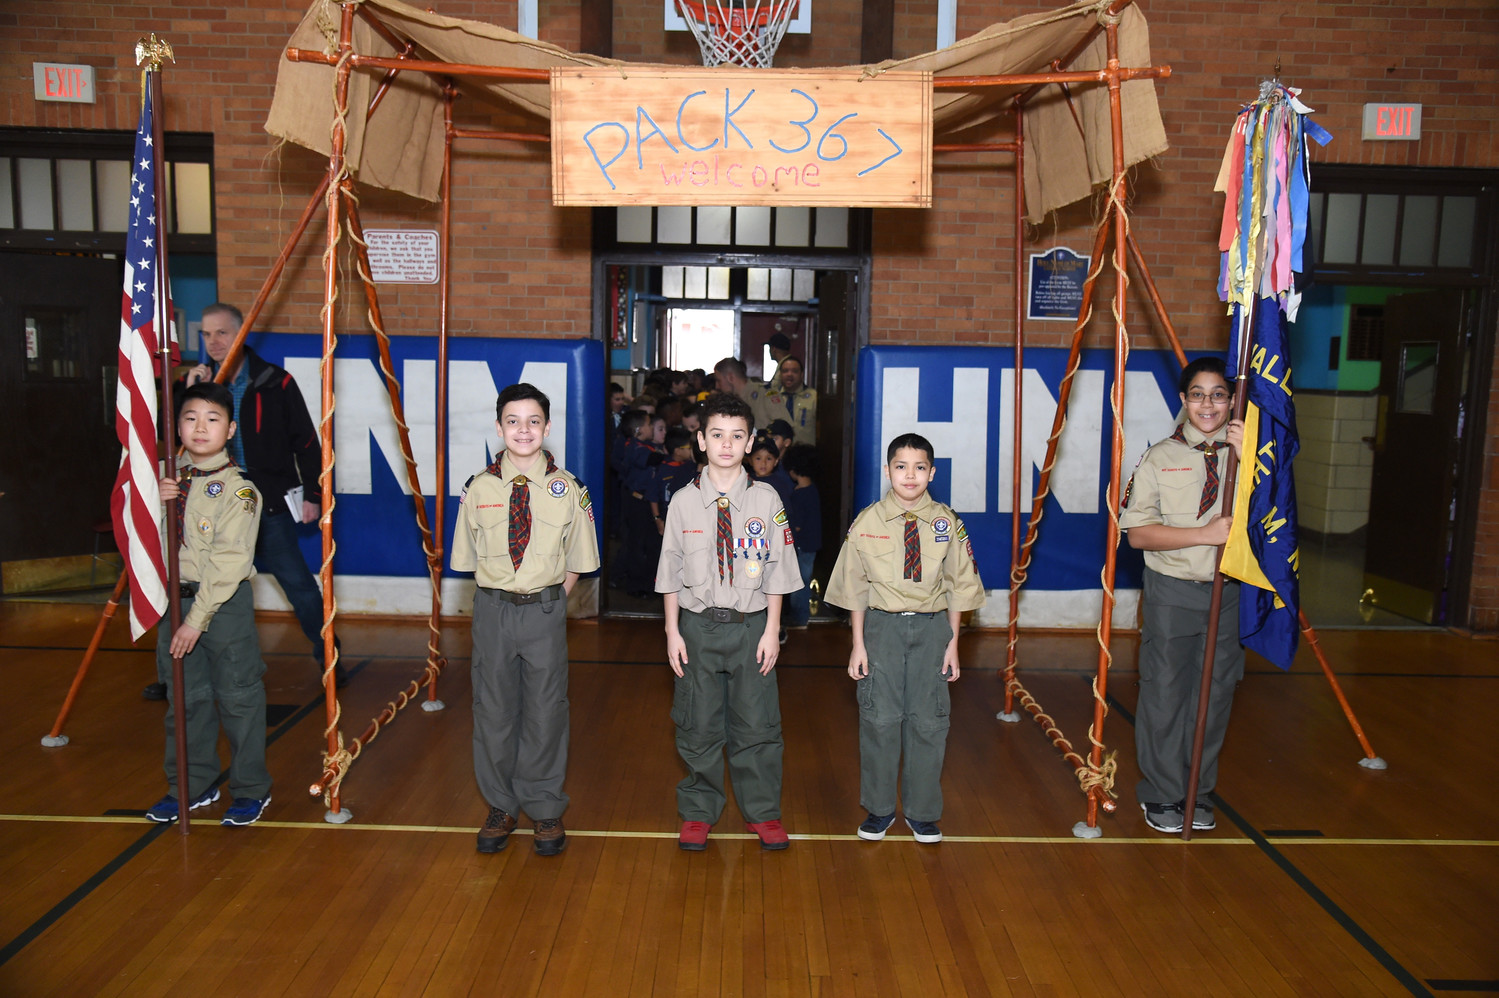 Cub Scouts Samuel Seung-Ju Na, 10; Marco A. Alvarez, 11; Logan Thomson, 10; Benjamin Charles Amirazodi, 11; and Darwin Thomas Hinson II, 10, welcomed members of Cub Scout Pack 367 to the Blue and Gold ceremony on March 3.